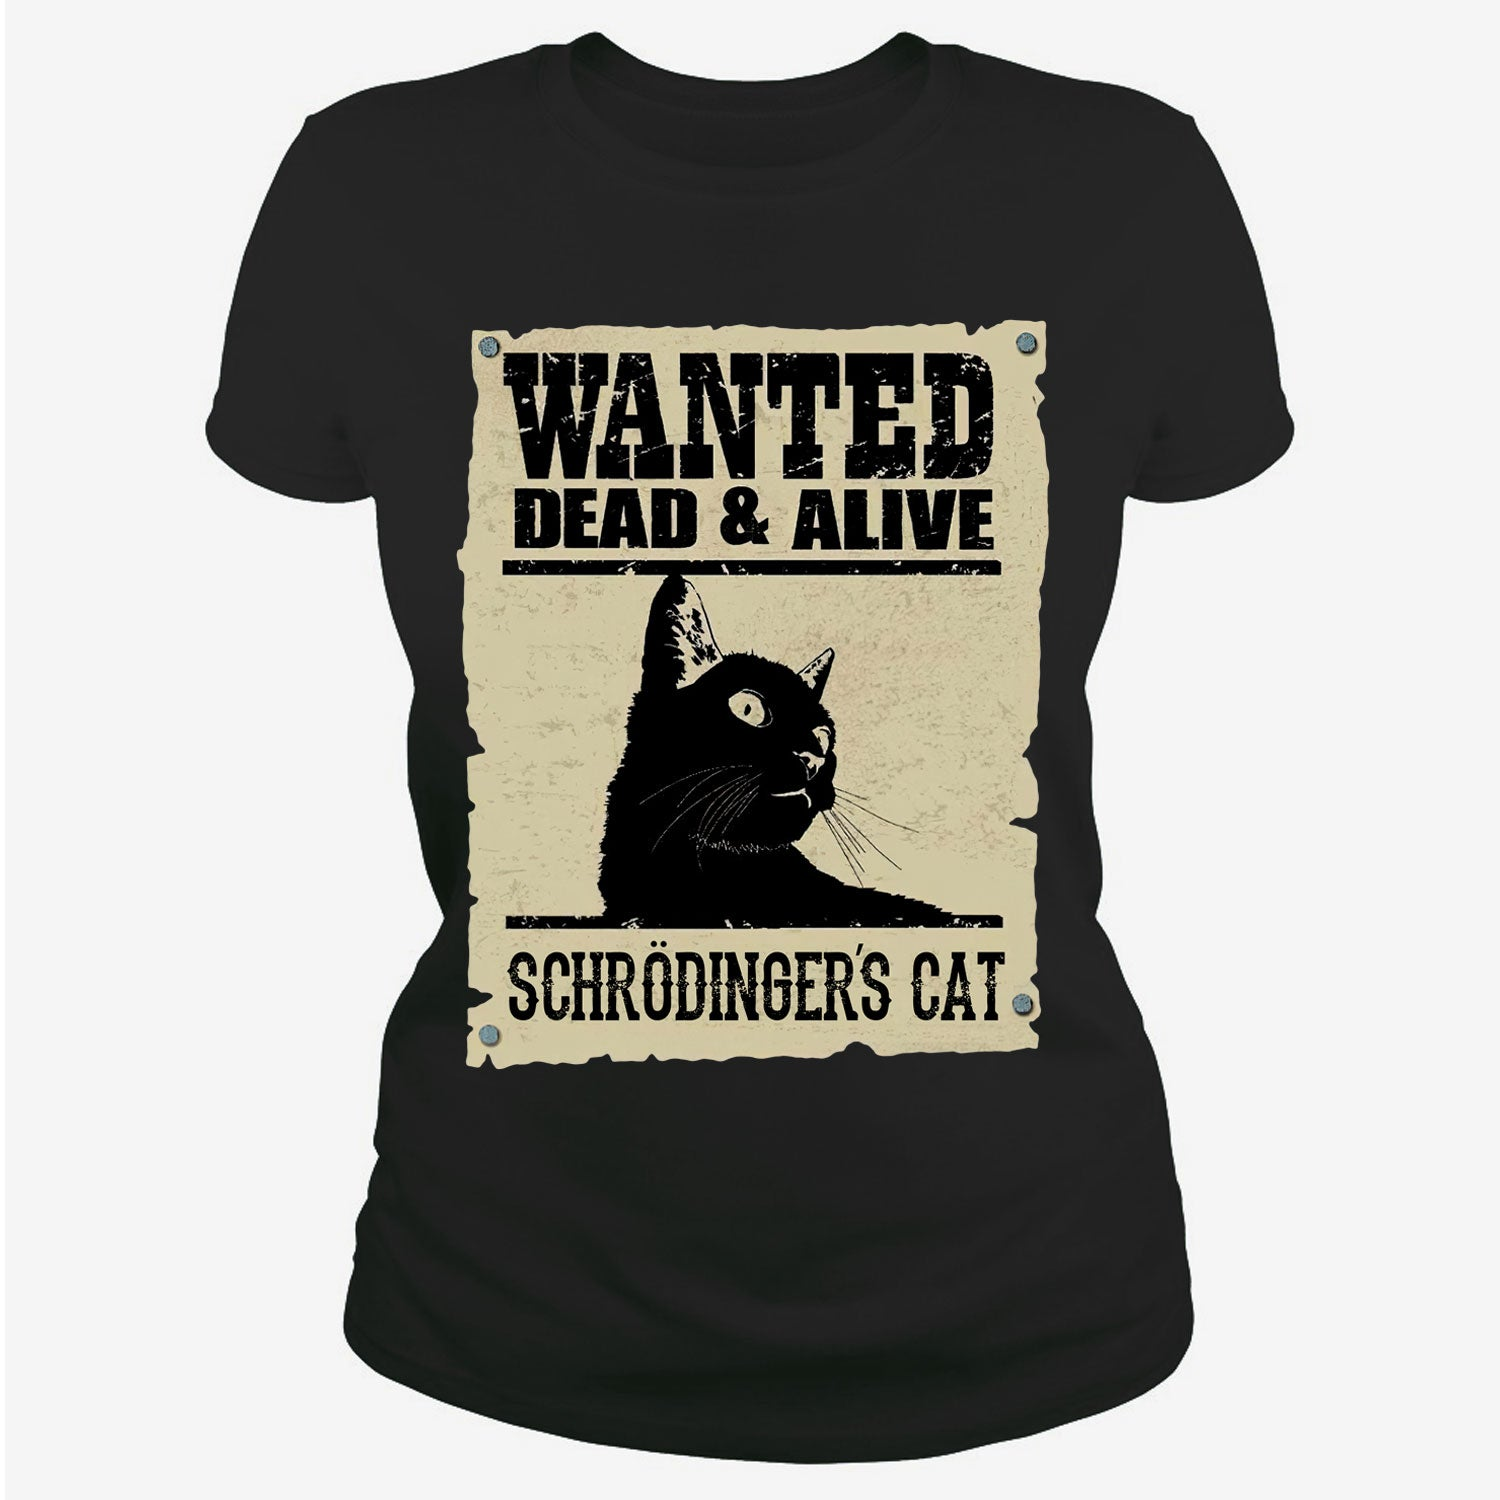 Wanted Dead & Alive Schrodinger's Cat